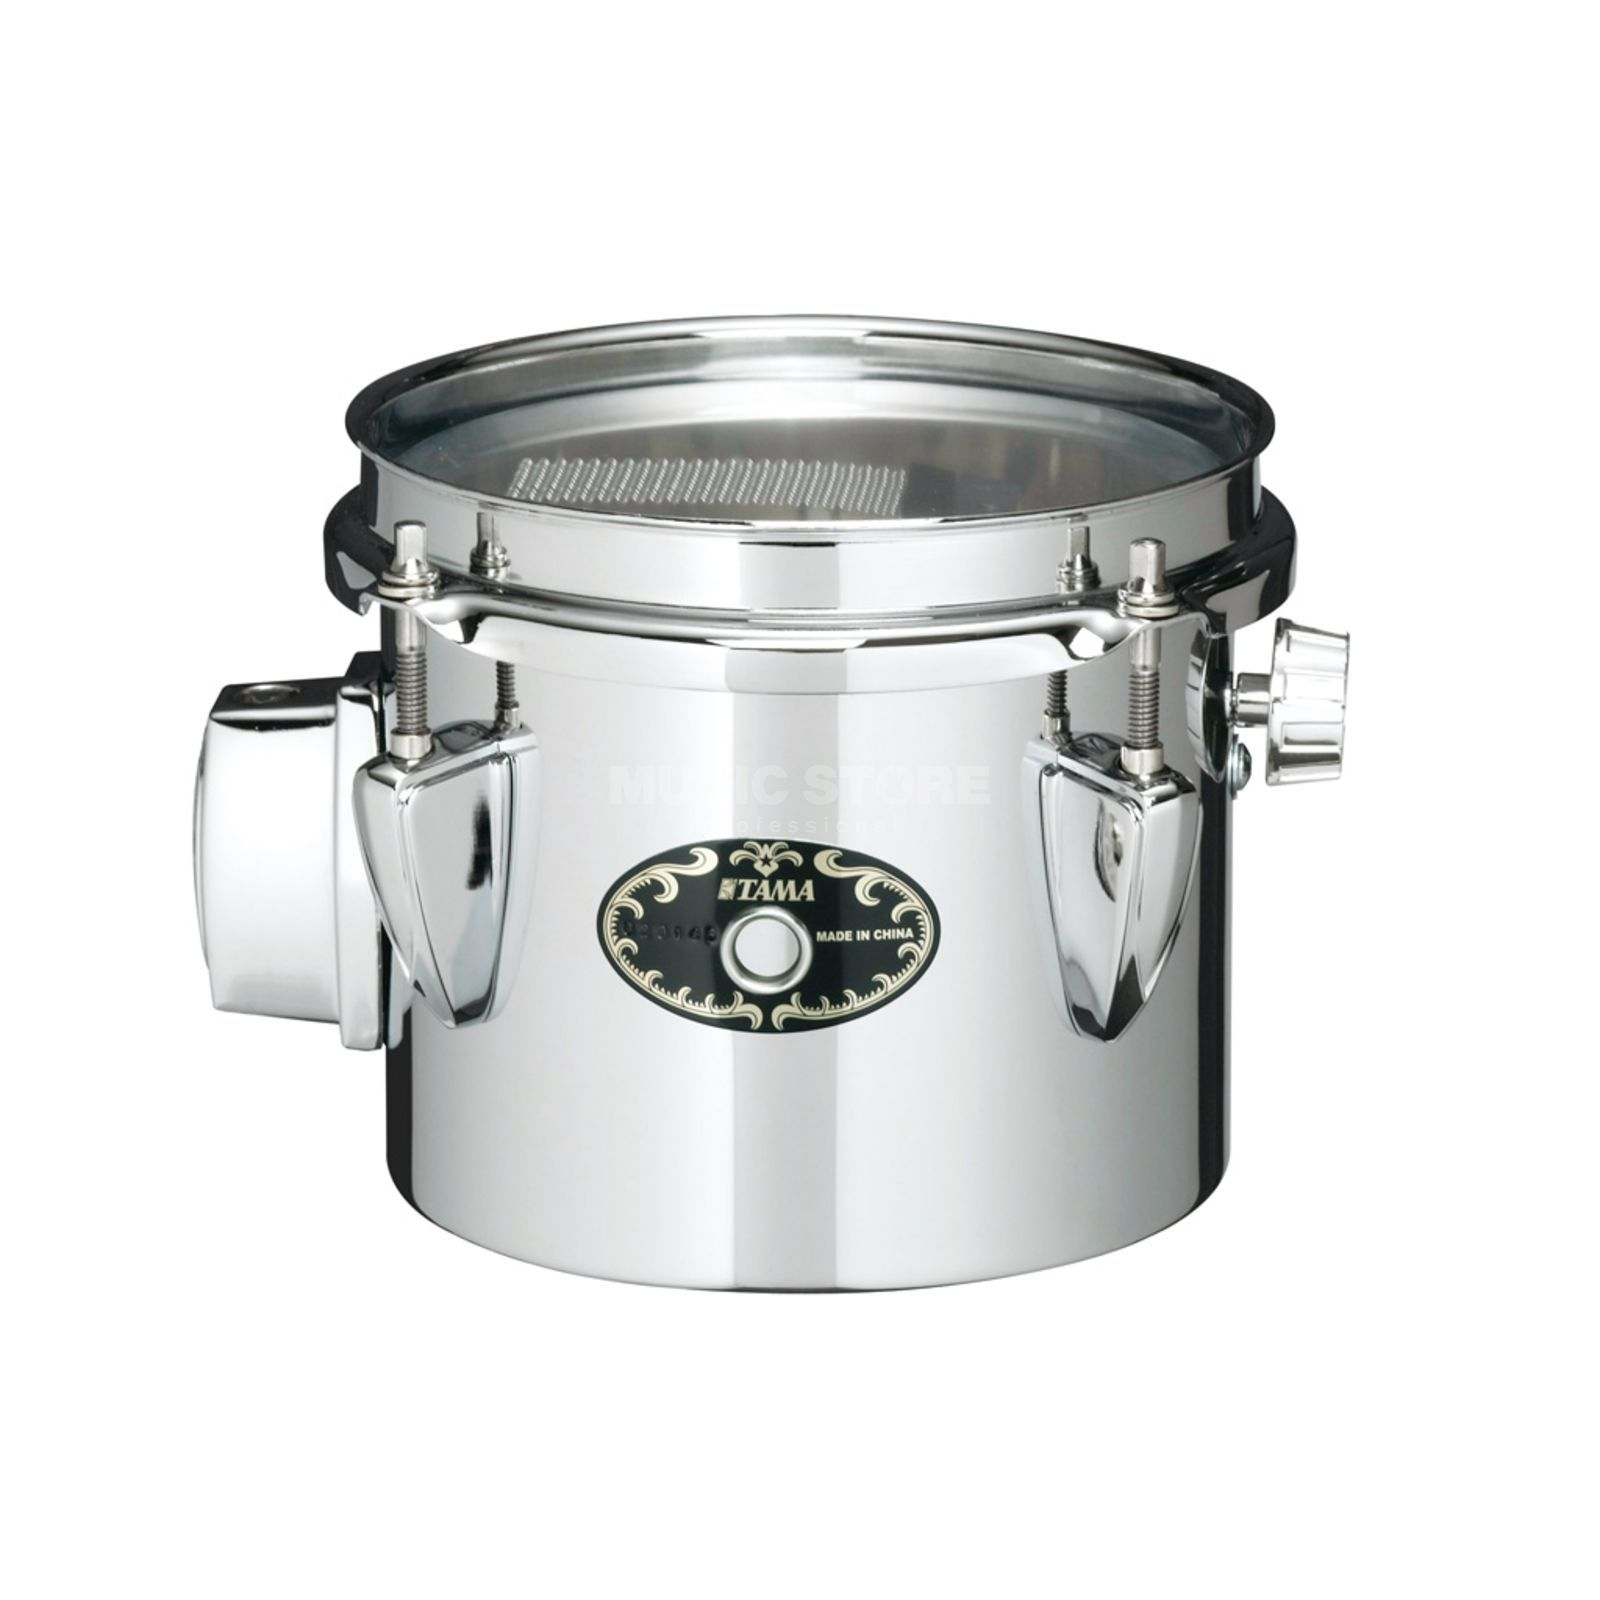 "Tama Mini-Tymp Snare STS065M, 6""x5"", incl. clamp Produktbillede"